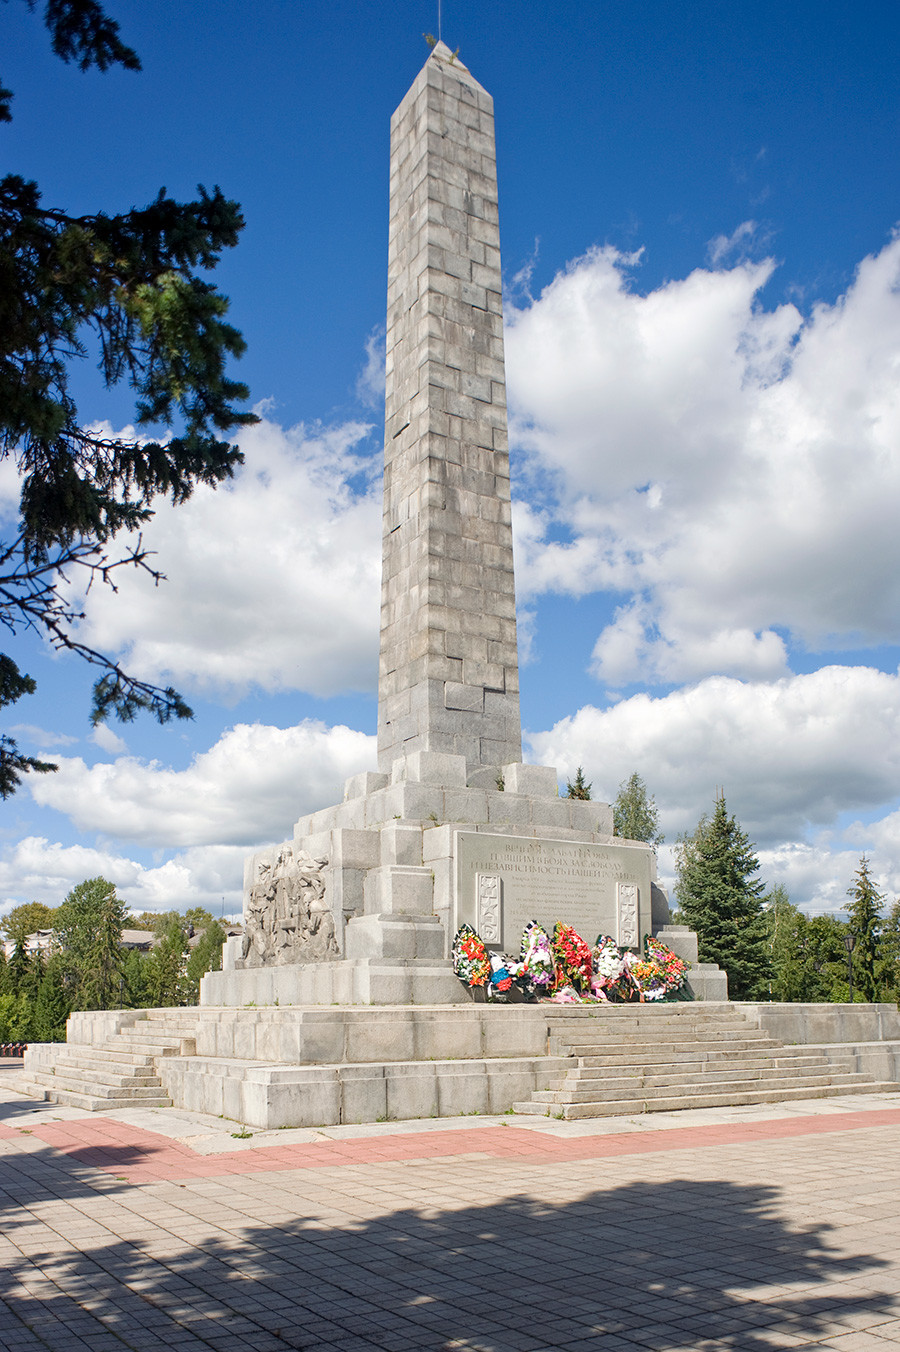 Obelisk to the Liberators of Rzhev on Cathedral Hill (site of destroyed Dormition Cathedral). August 13, 2016.